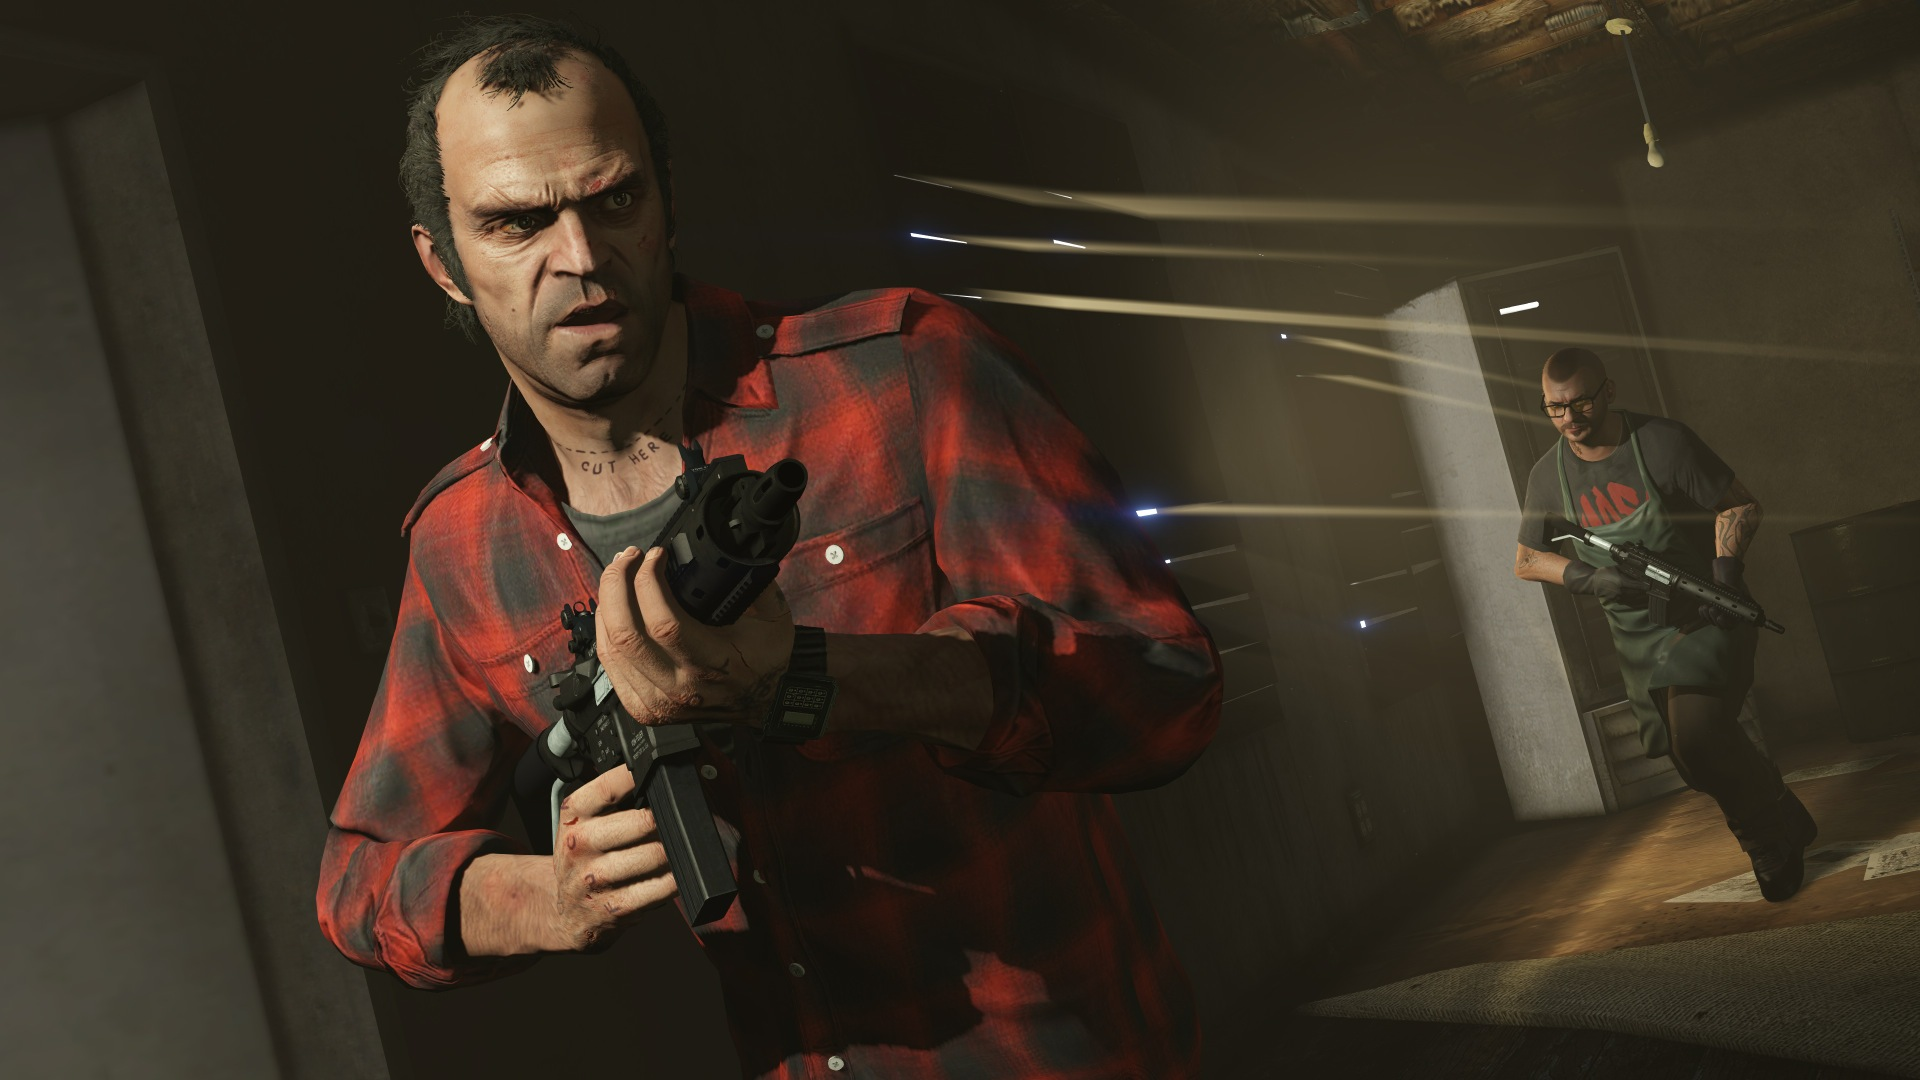 Trevor Philips is my favorite caracter of GTA V because he is just